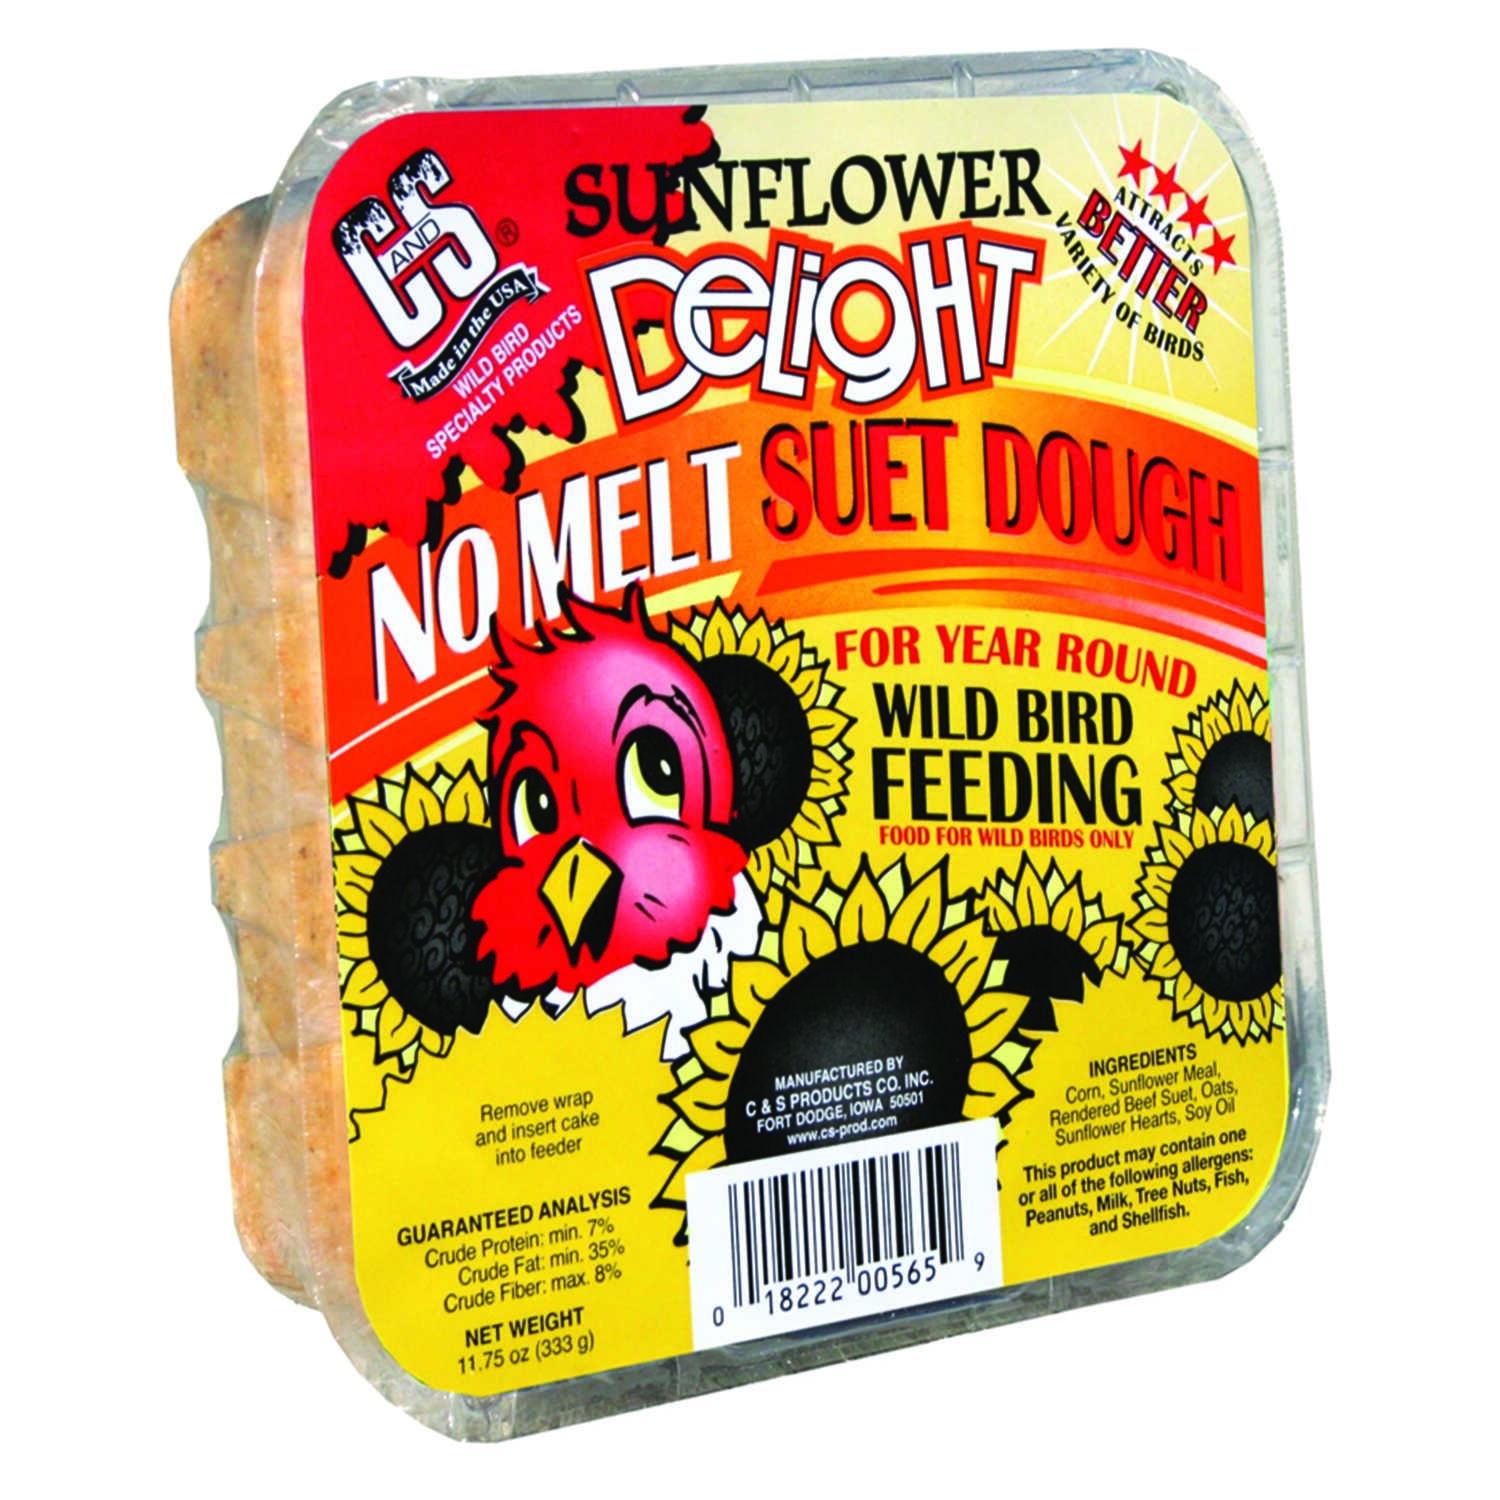 C&S Products  Sunflower Delight  Assorted Species  Wild Bird Food  Beef Suet  11.75 oz.